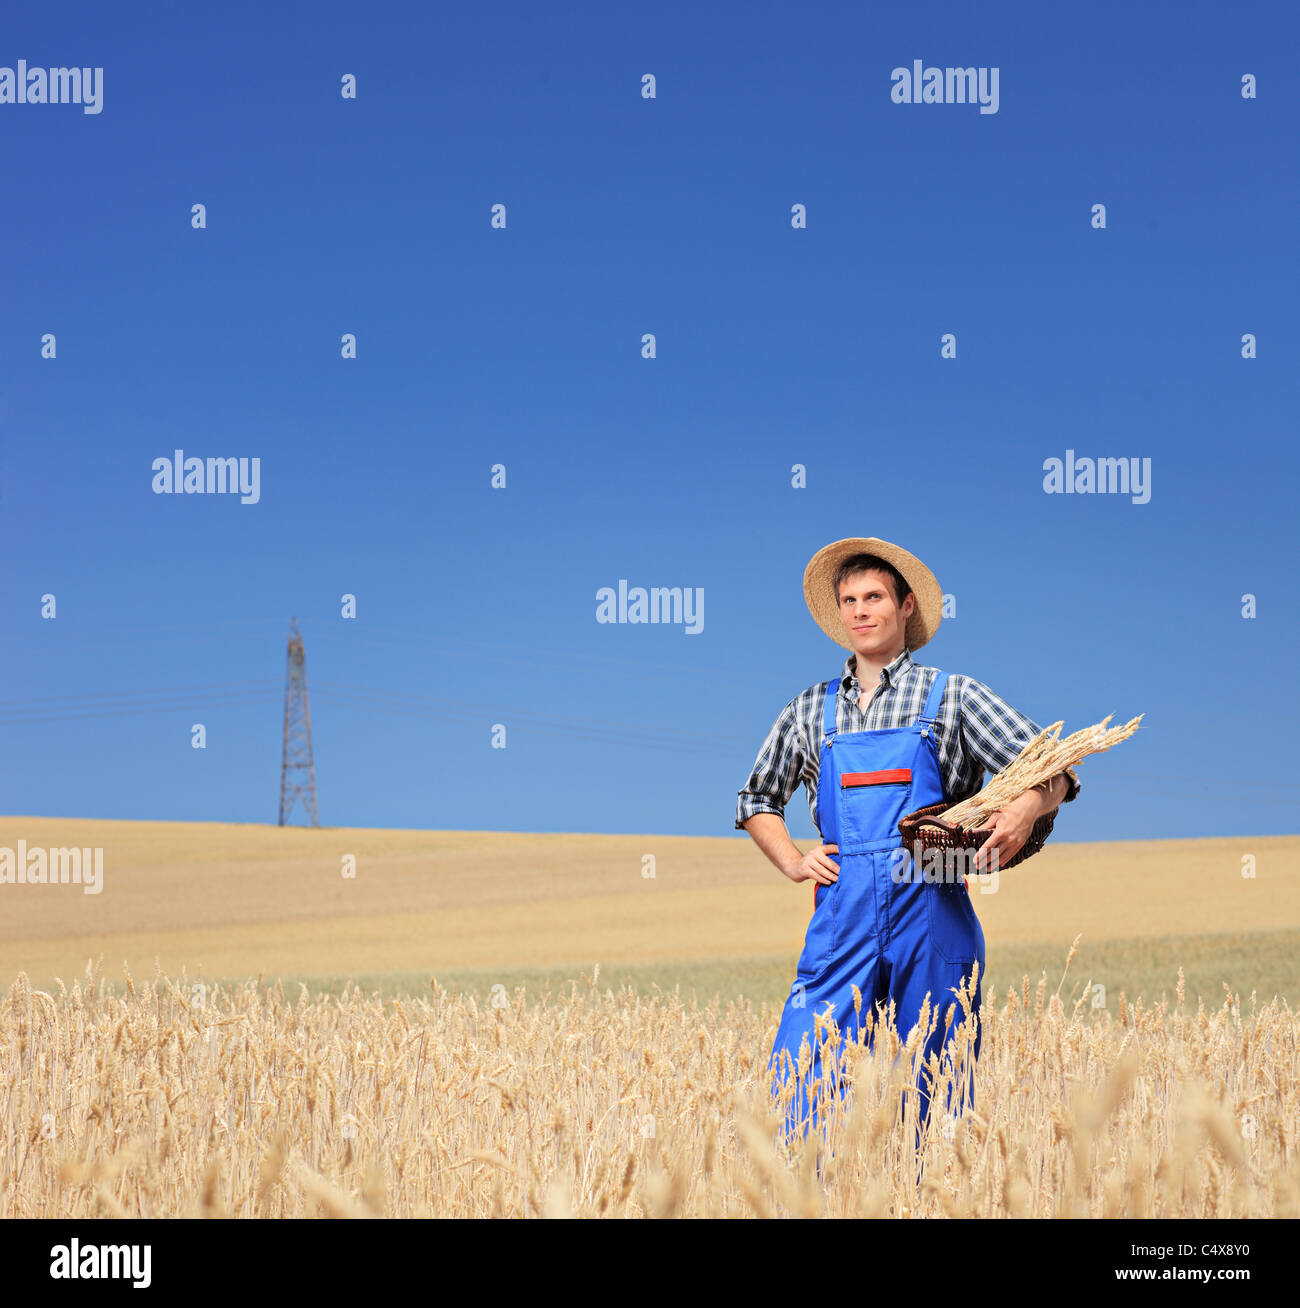 A young farmer with panama hat holding a basket in a field - Stock Image